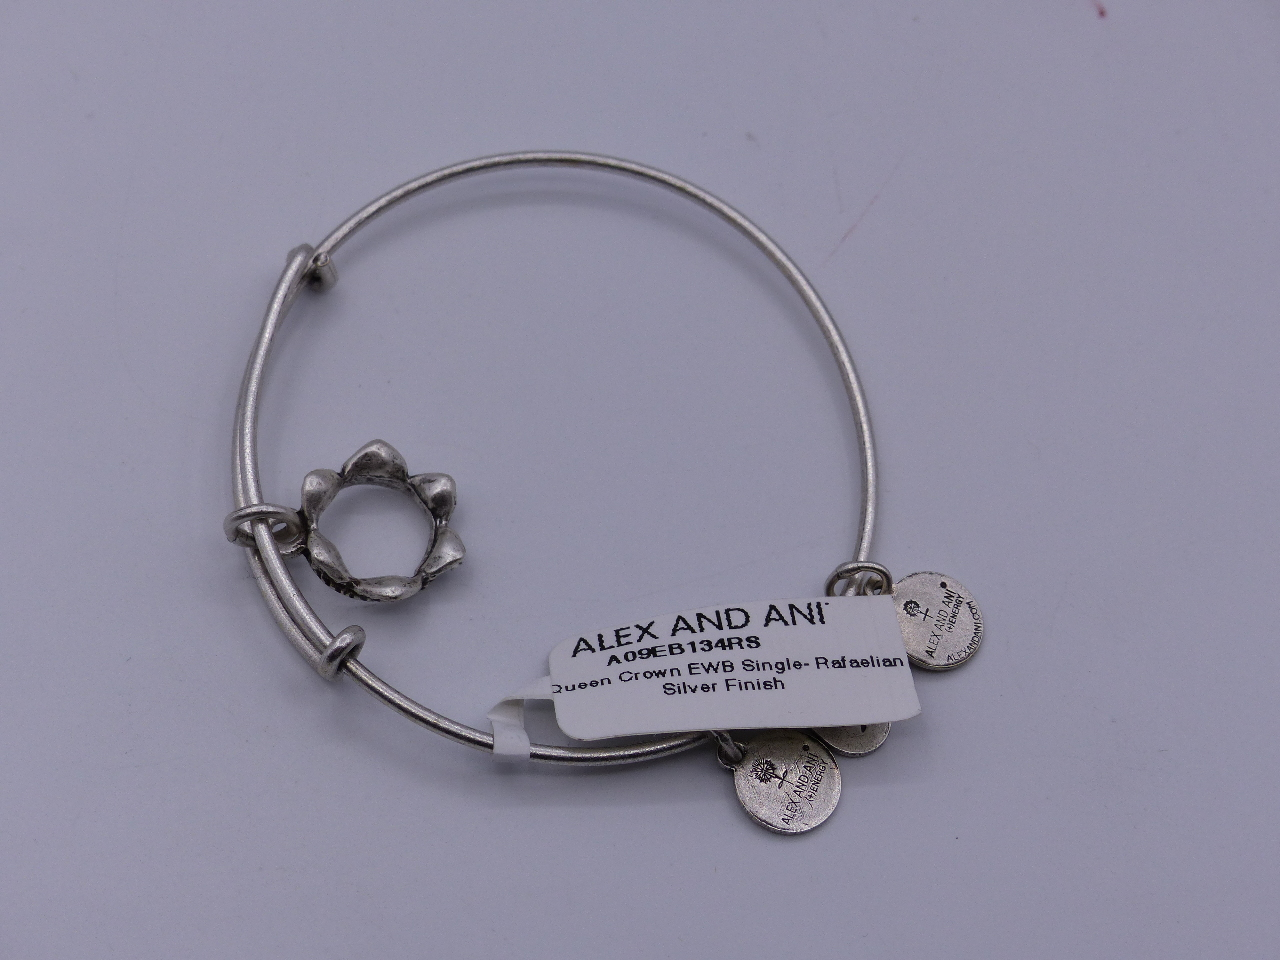 Alex And Ani Queen Crown Bracelet Silver Finish Comes W Card Charm Bangle Bracel